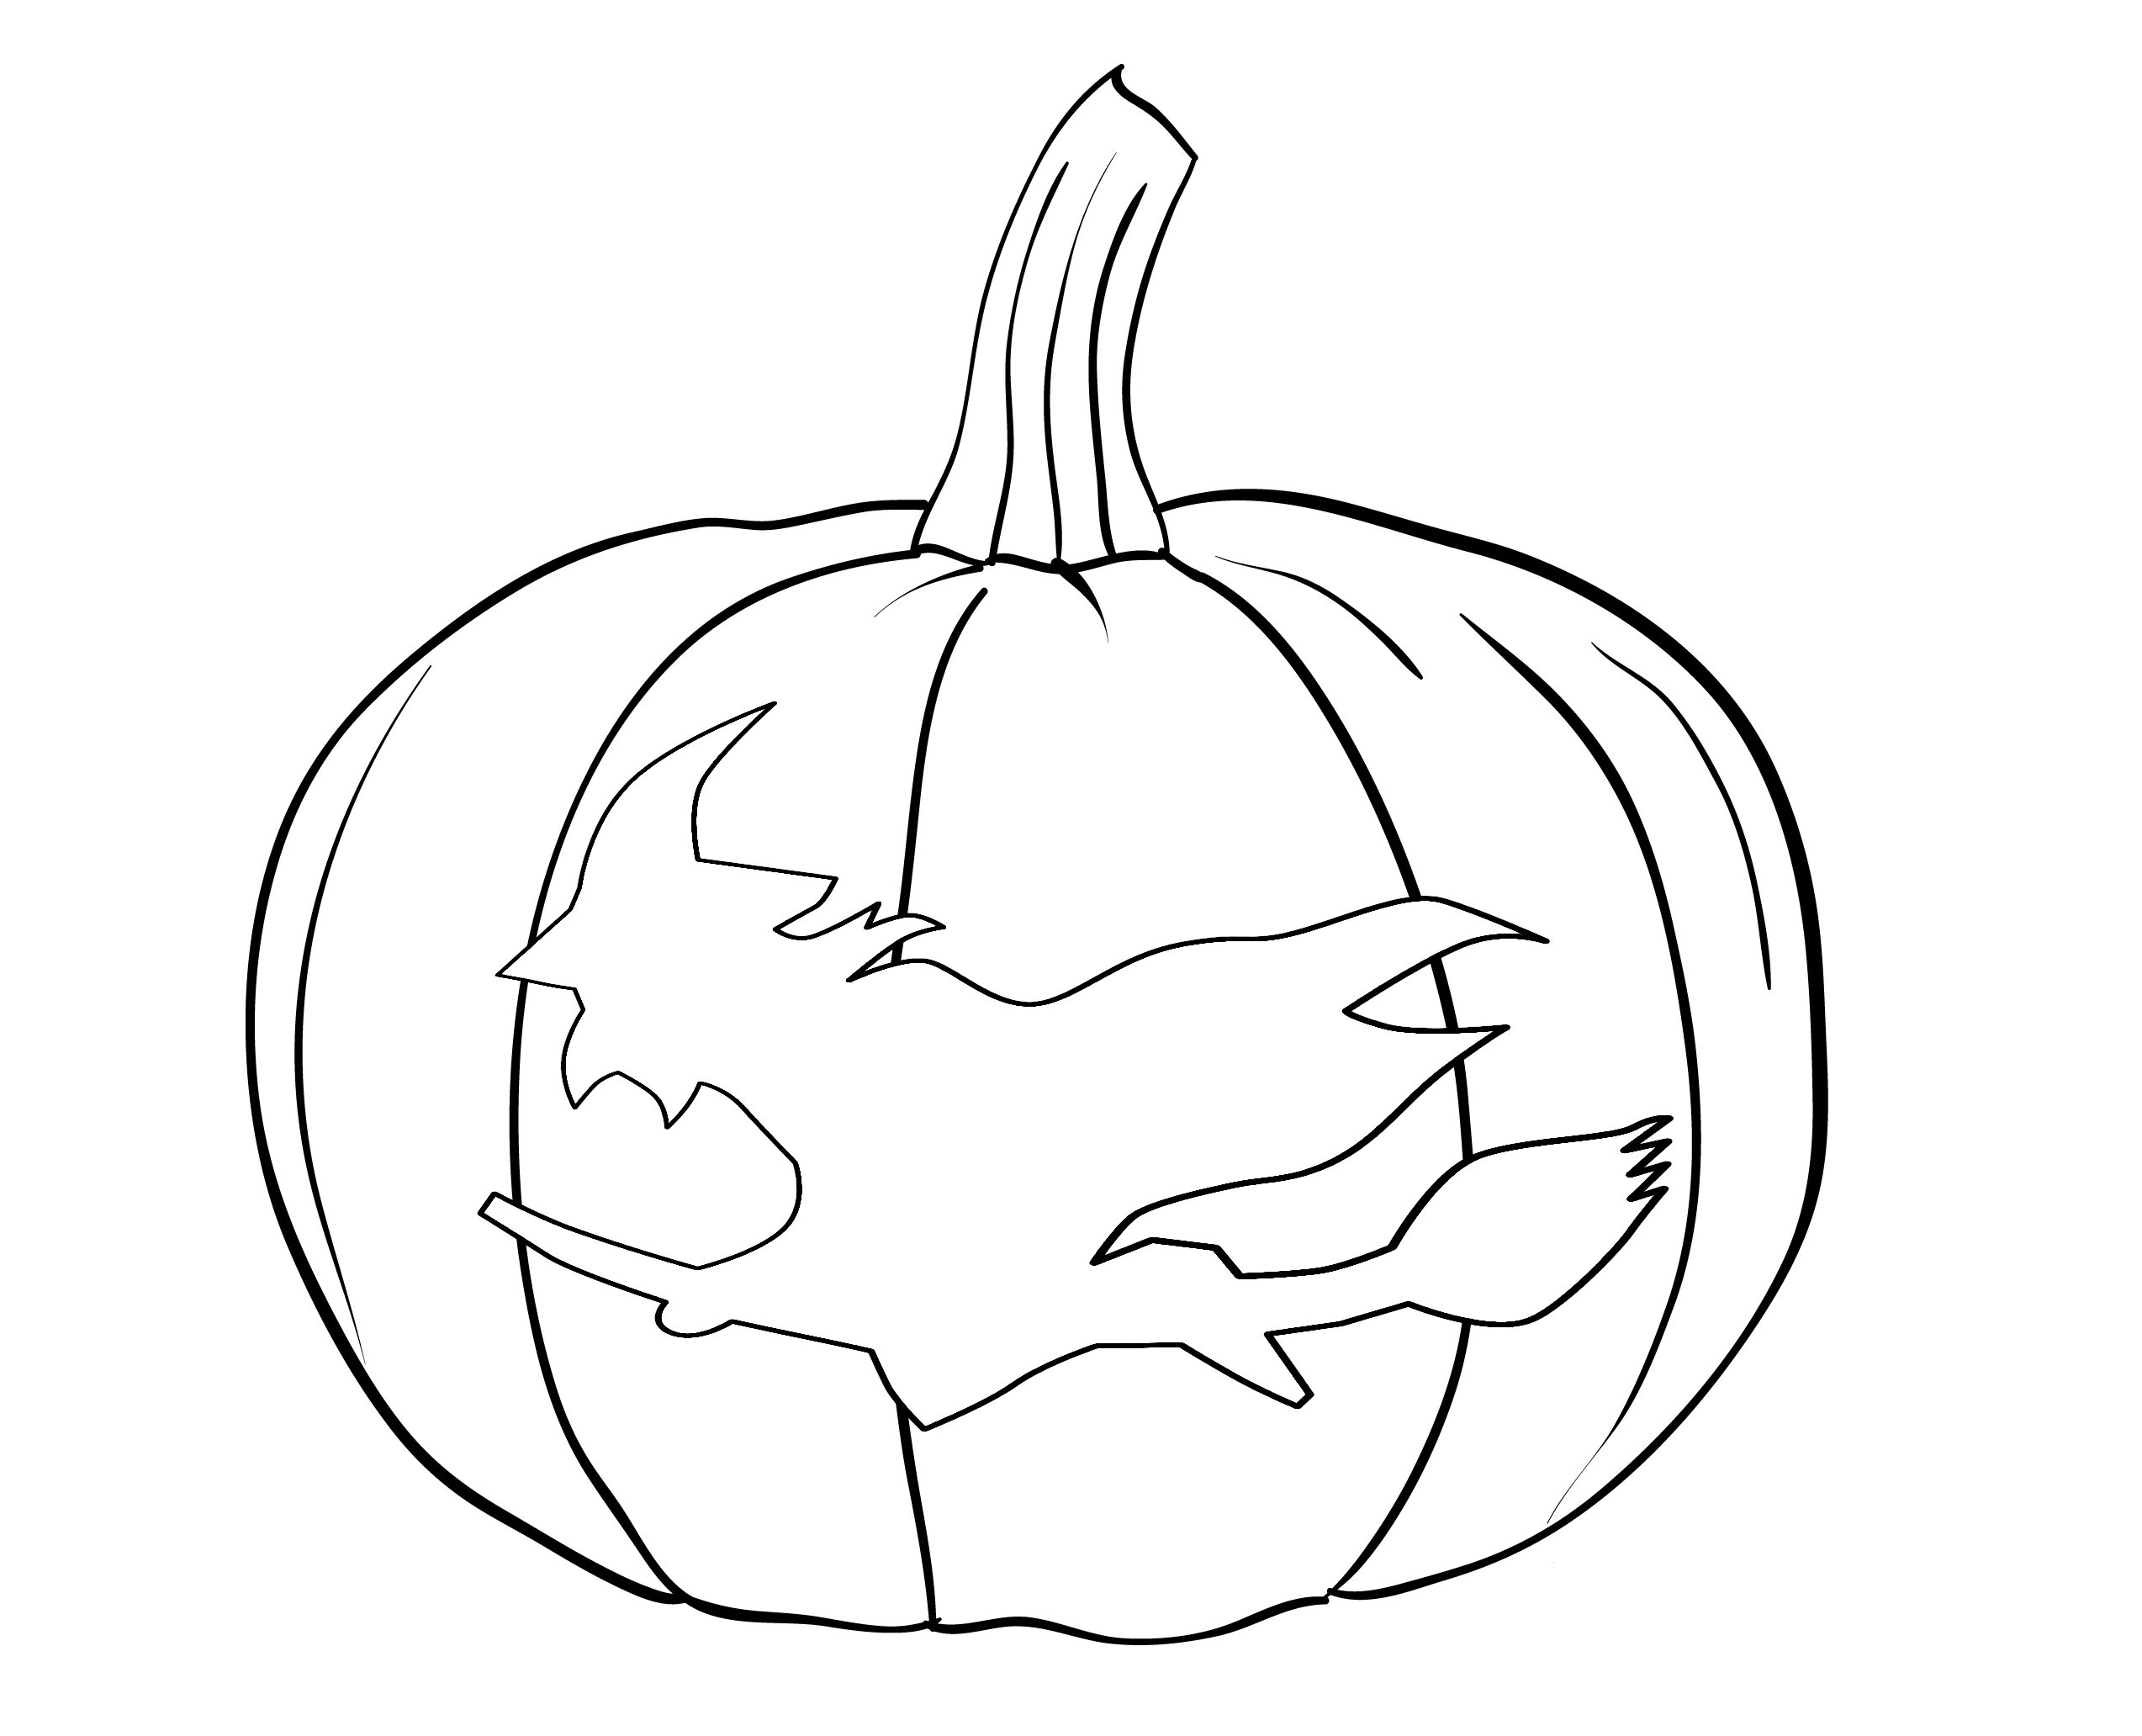 pictures of pumpkins free printable pumpkin coloring pages for kids of pictures pumpkins 1 1